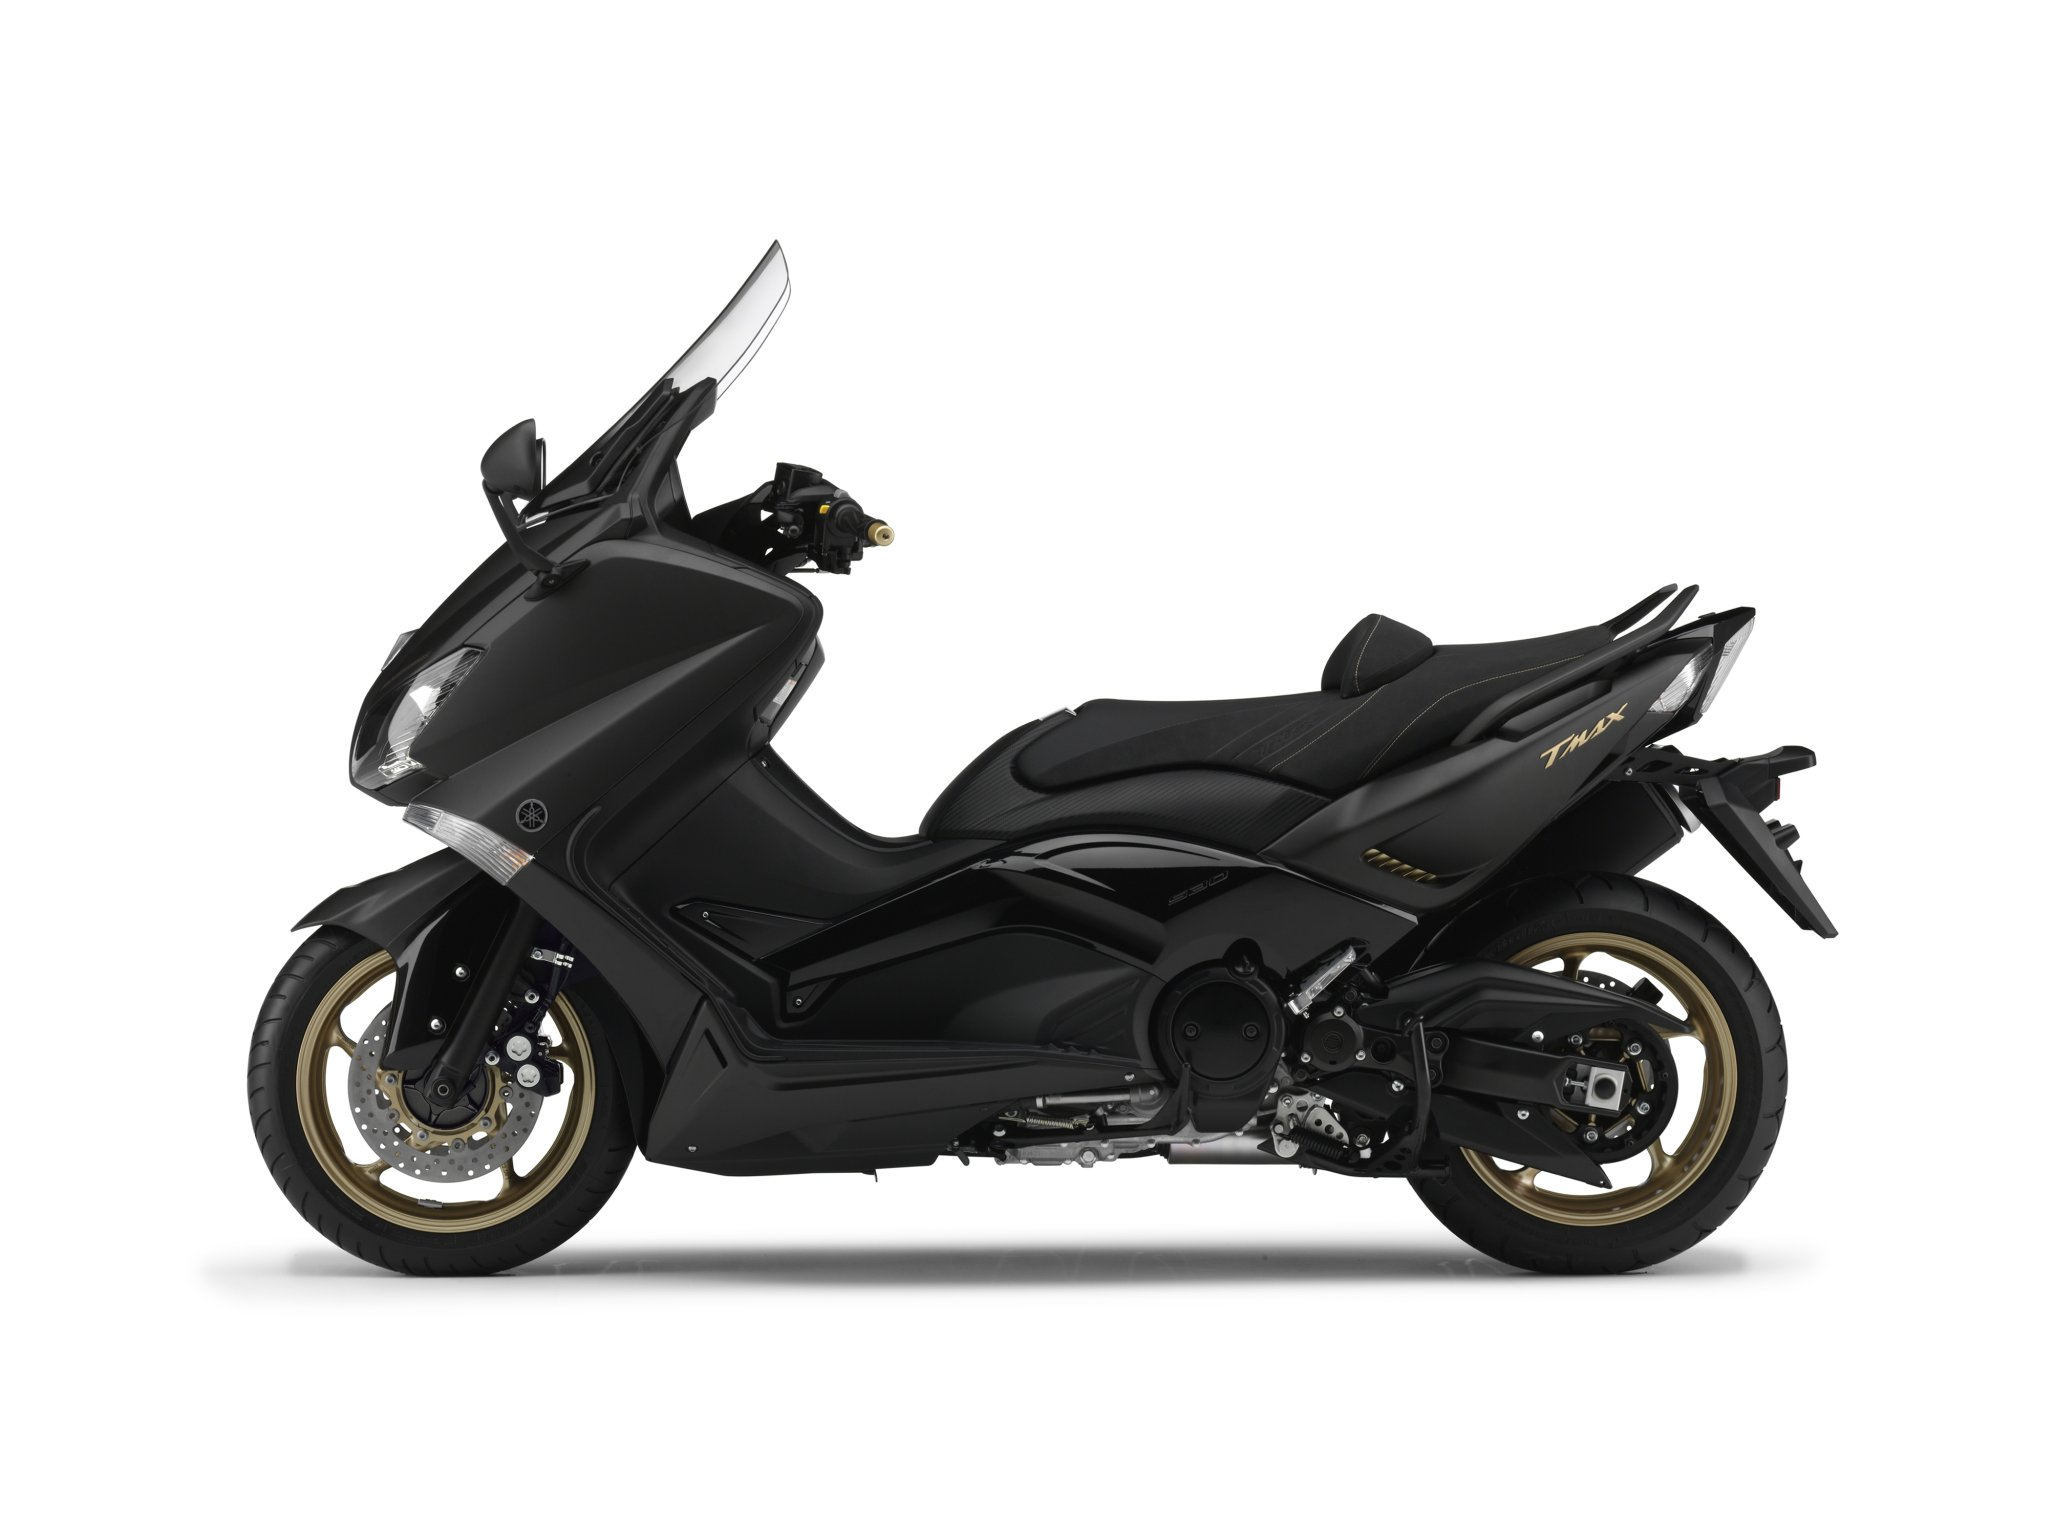 motorrad occasion yamaha t max 530 black max kaufen. Black Bedroom Furniture Sets. Home Design Ideas